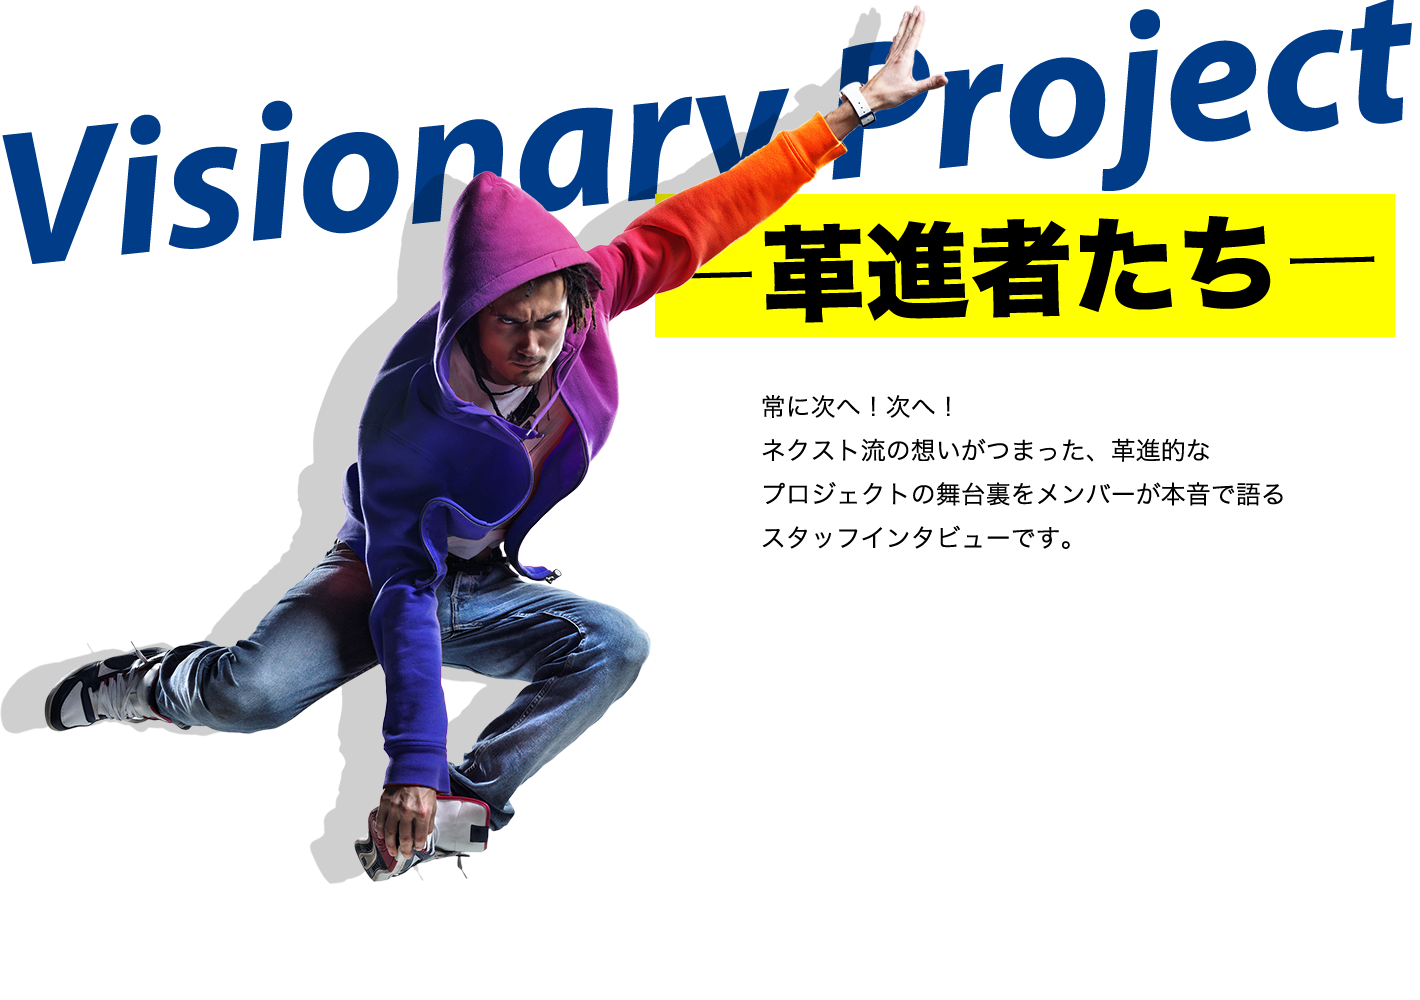 Visonary Project 革進者たち